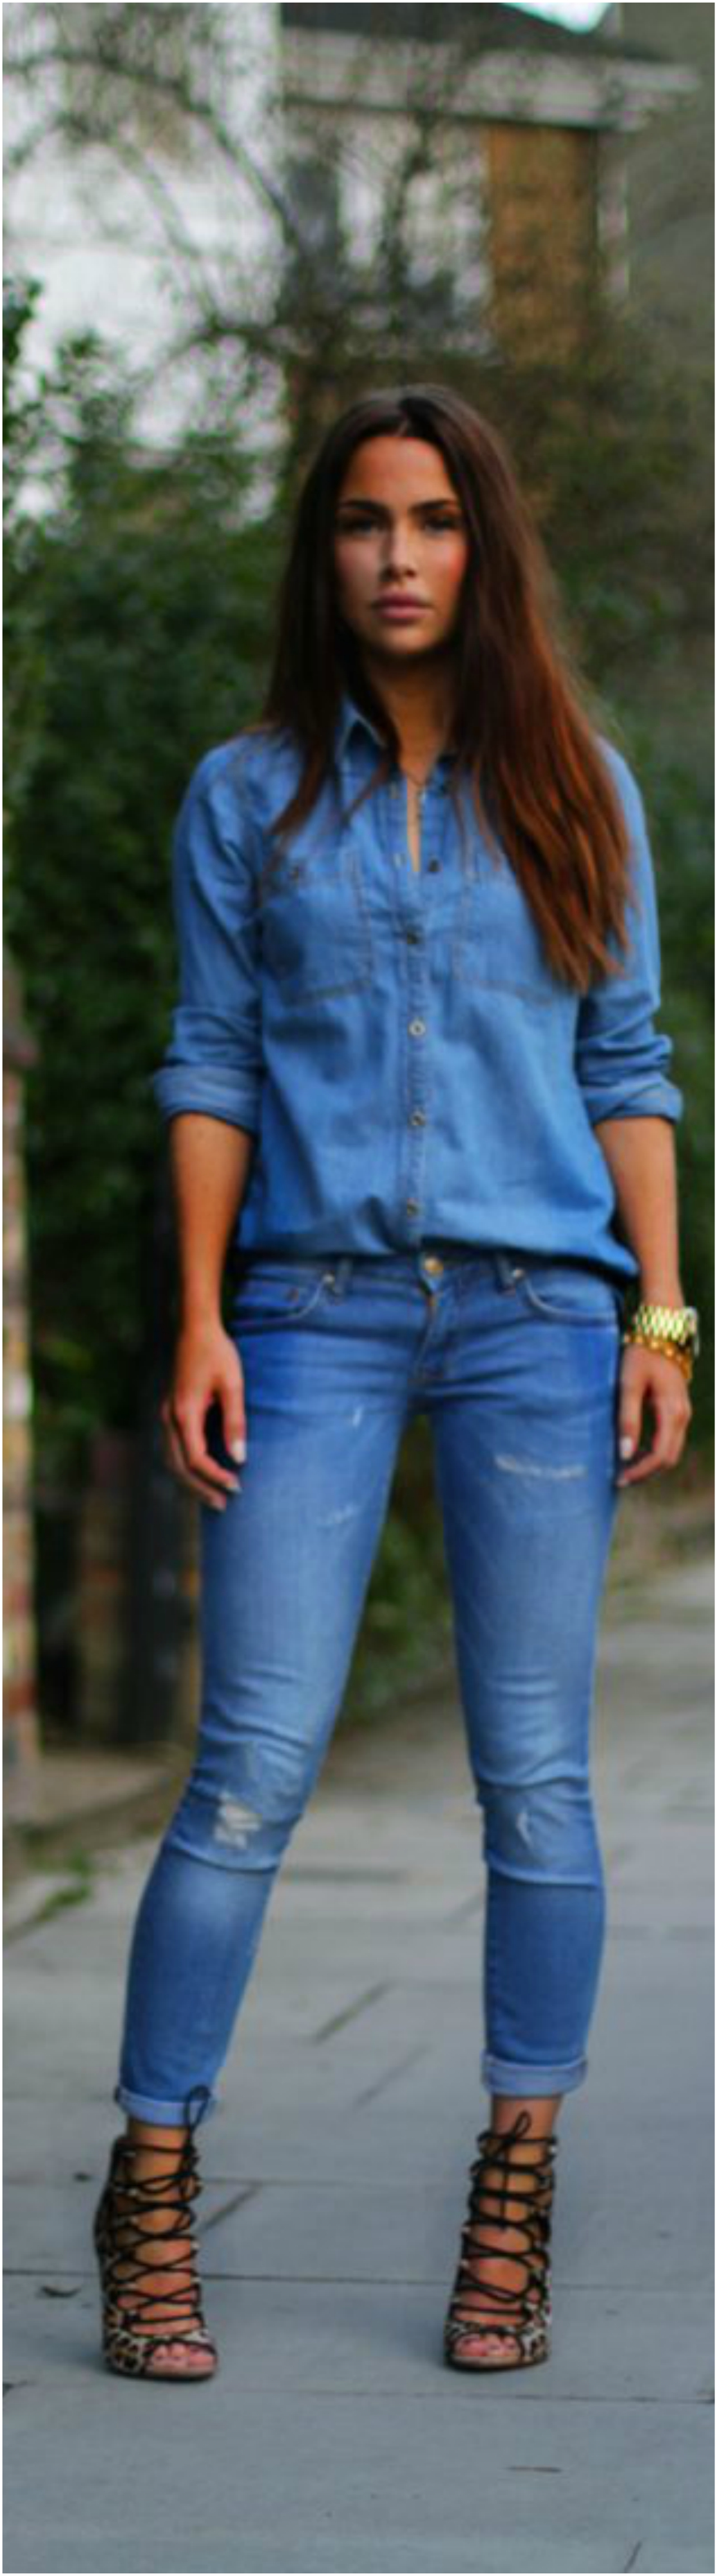 Denim Outfit (7)